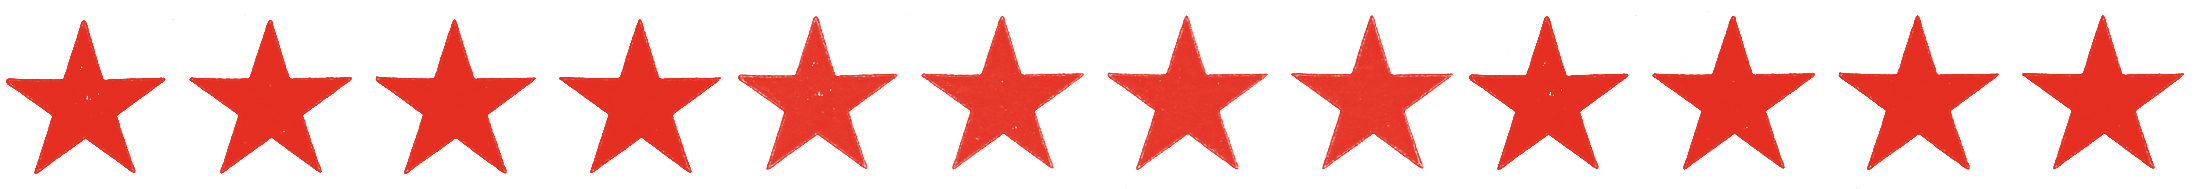 Star Clipart - Star Images Free - The Graphics Fairy